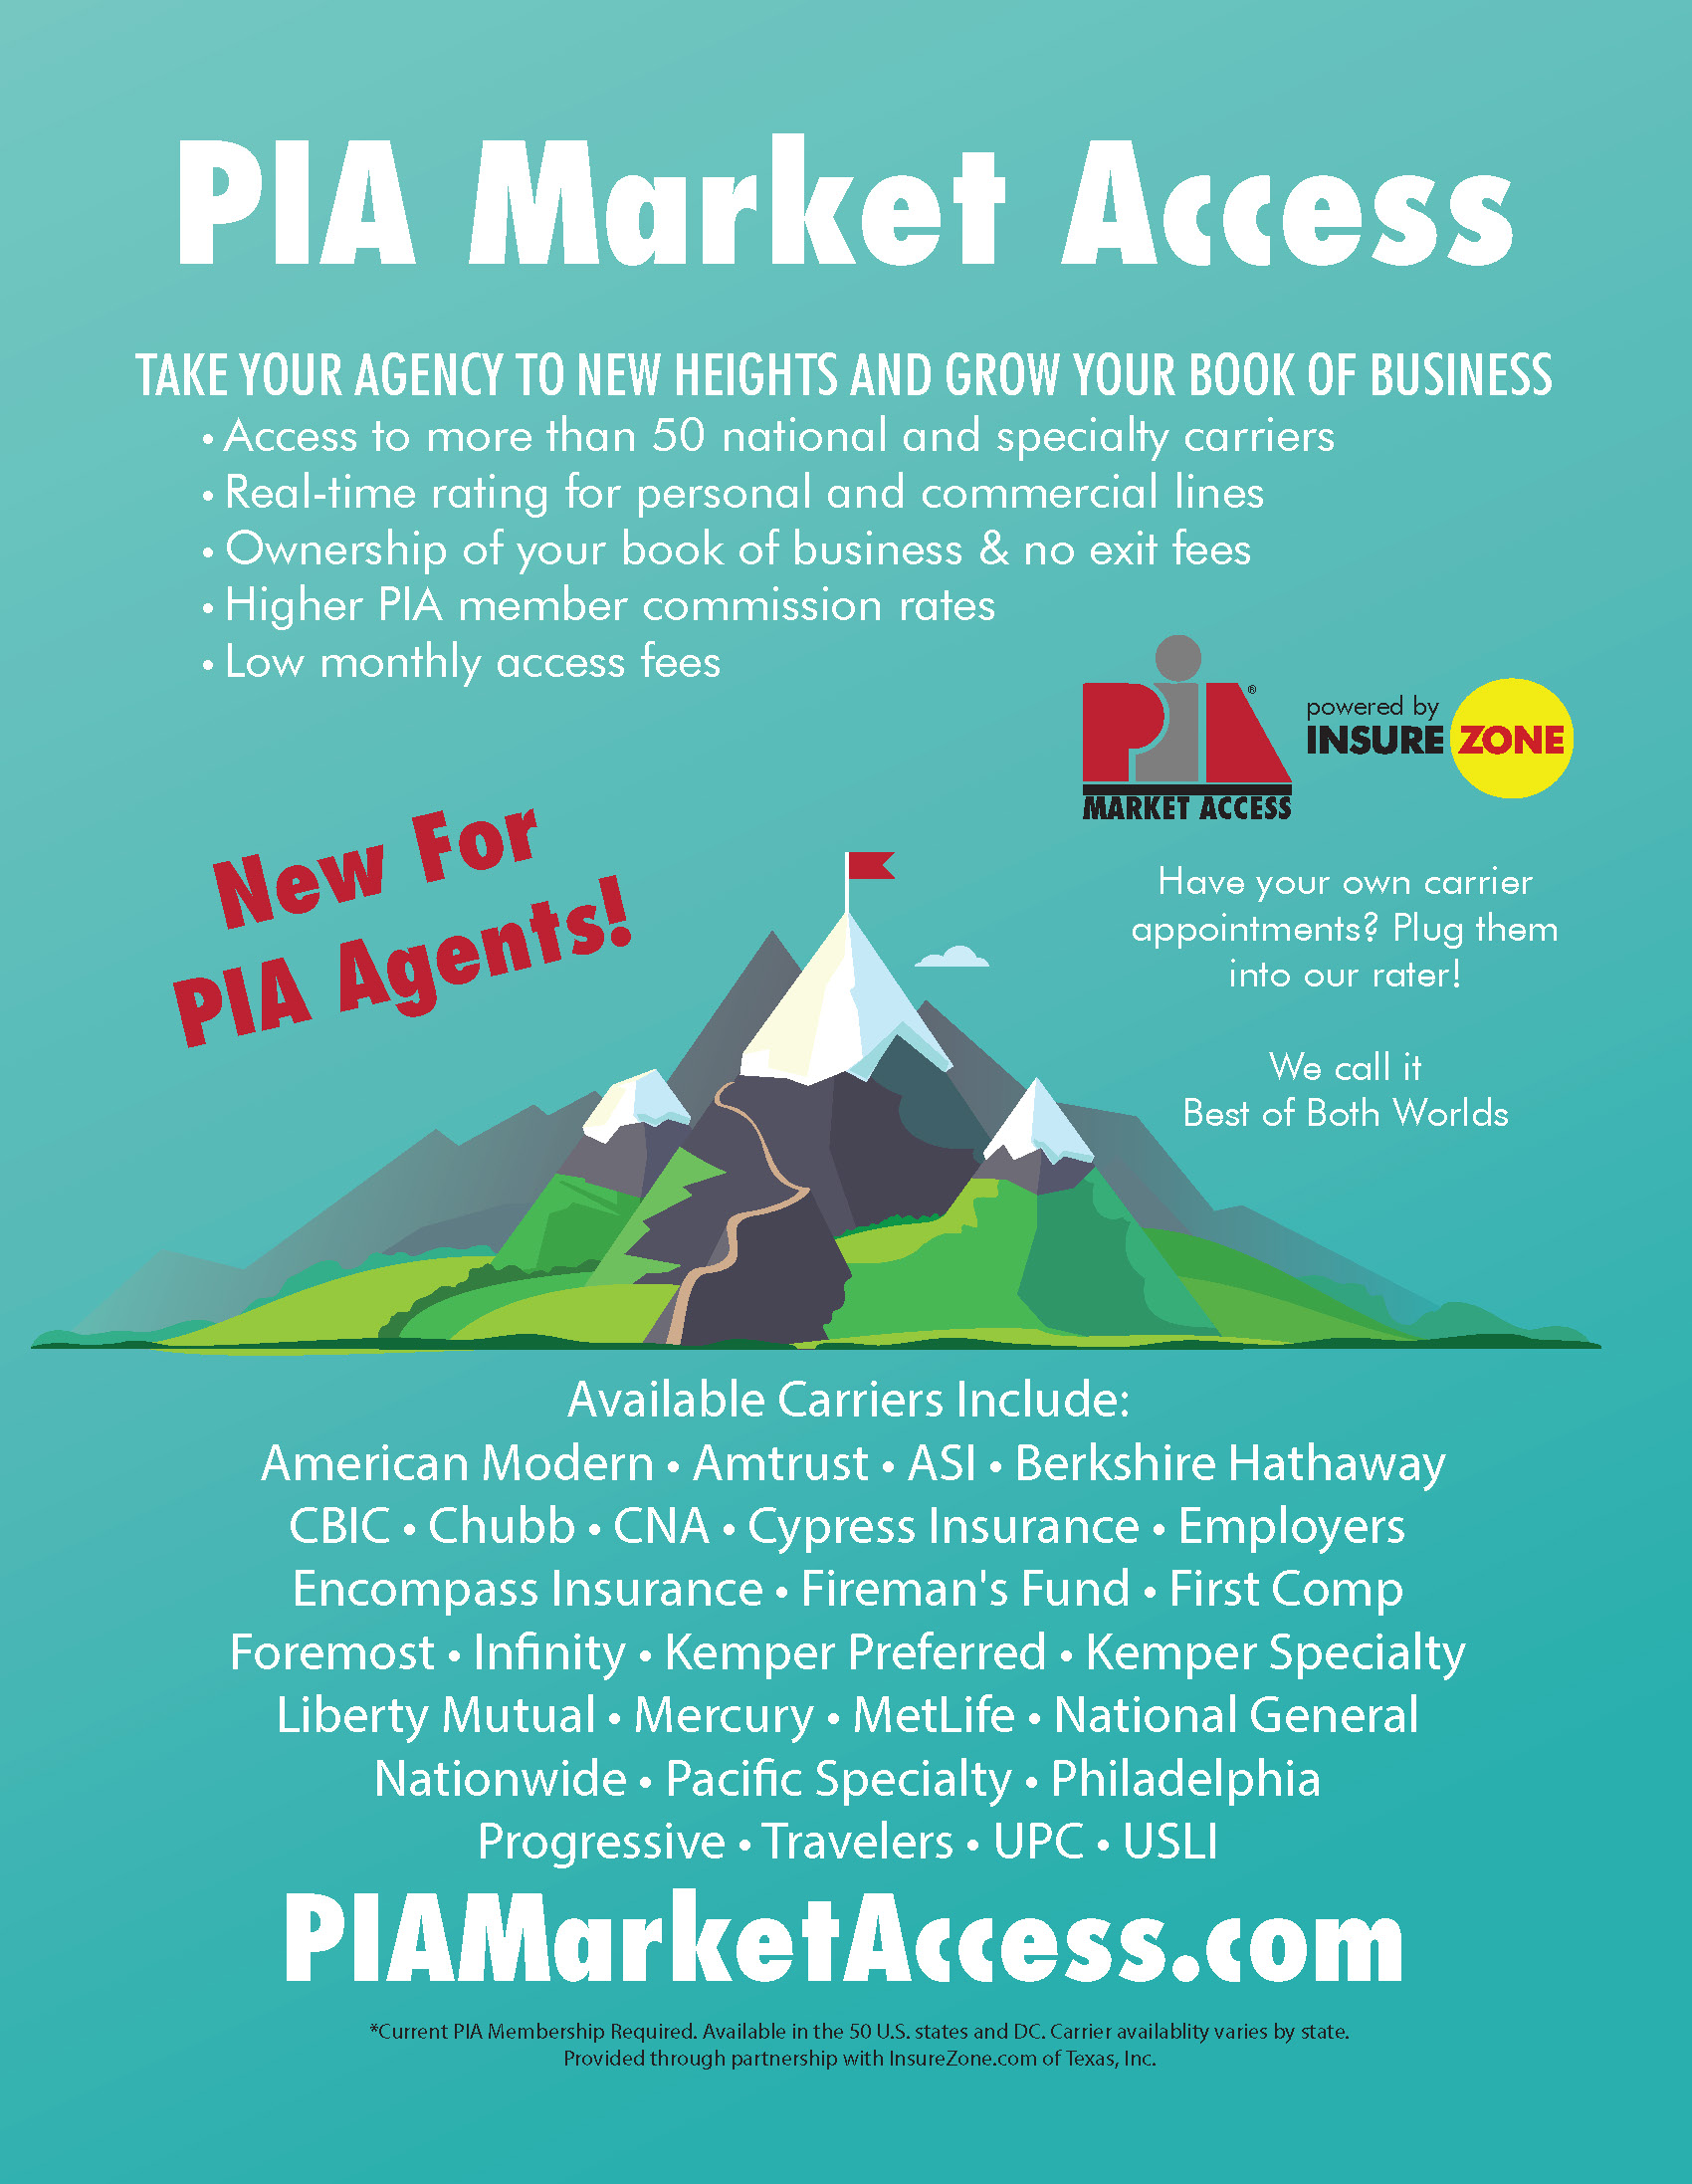 PIA Market Access Flyer